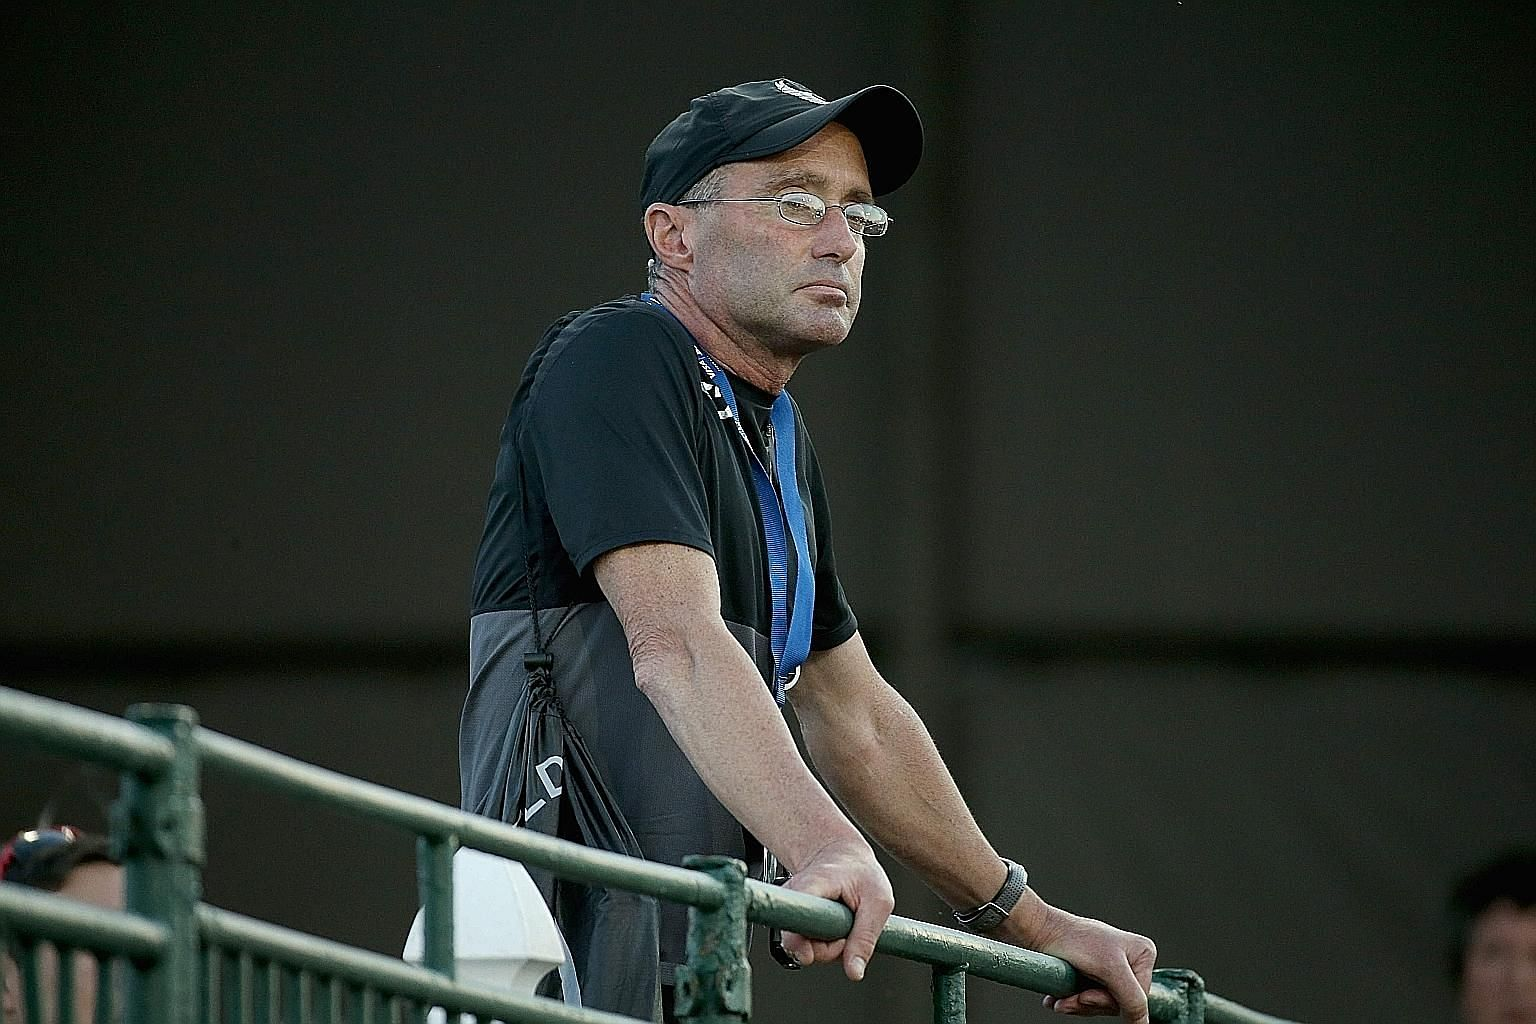 Whistle-blowers have revealed the unjust, unethical and highly damaging treatment of athletes by Alberto Salazar, seen in this 2015 file photo. He has denied breaking anti-doping rules and vowed to appeal his ban. PHOTO: AGENCE FRANCE-PRESSE